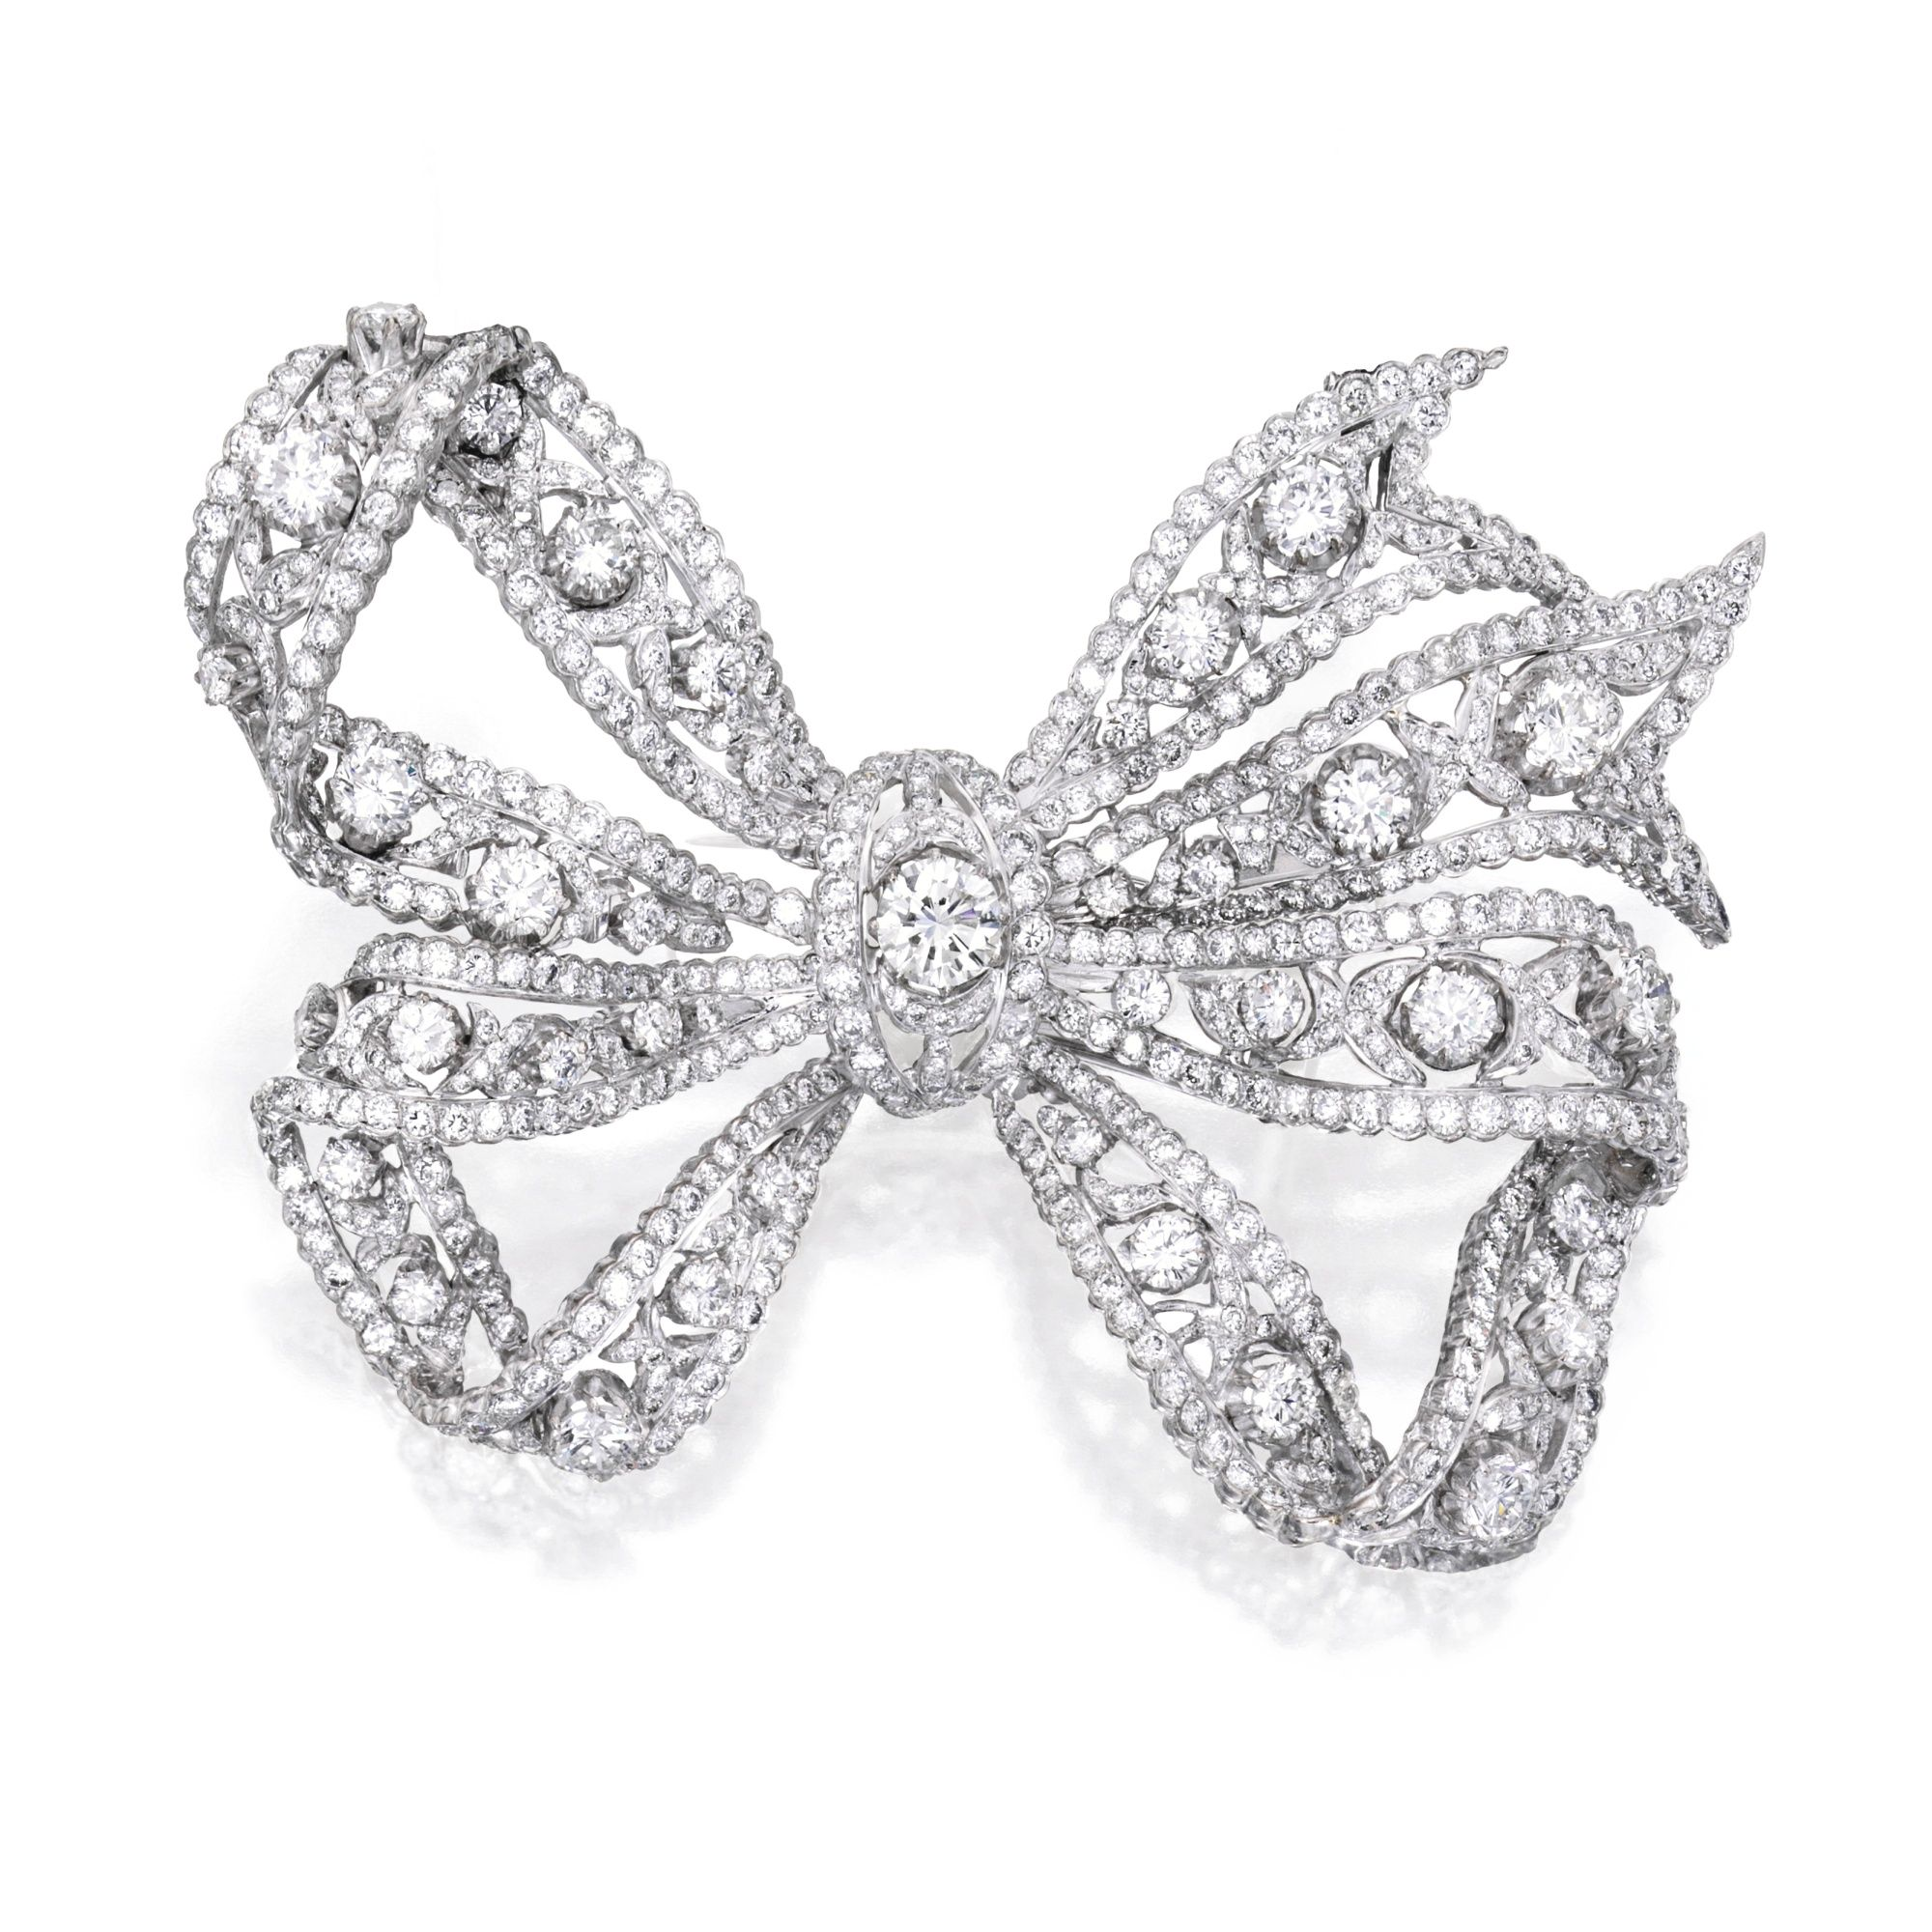 18 KARAT WHITE GOLD AND DIAMOND BROOCH Designed as an openwork bow, centered by a round diamond weighing approximately 1.40 carats, further set with numerous round, rose and single-cut diamonds weighing approximately 19.45 carats